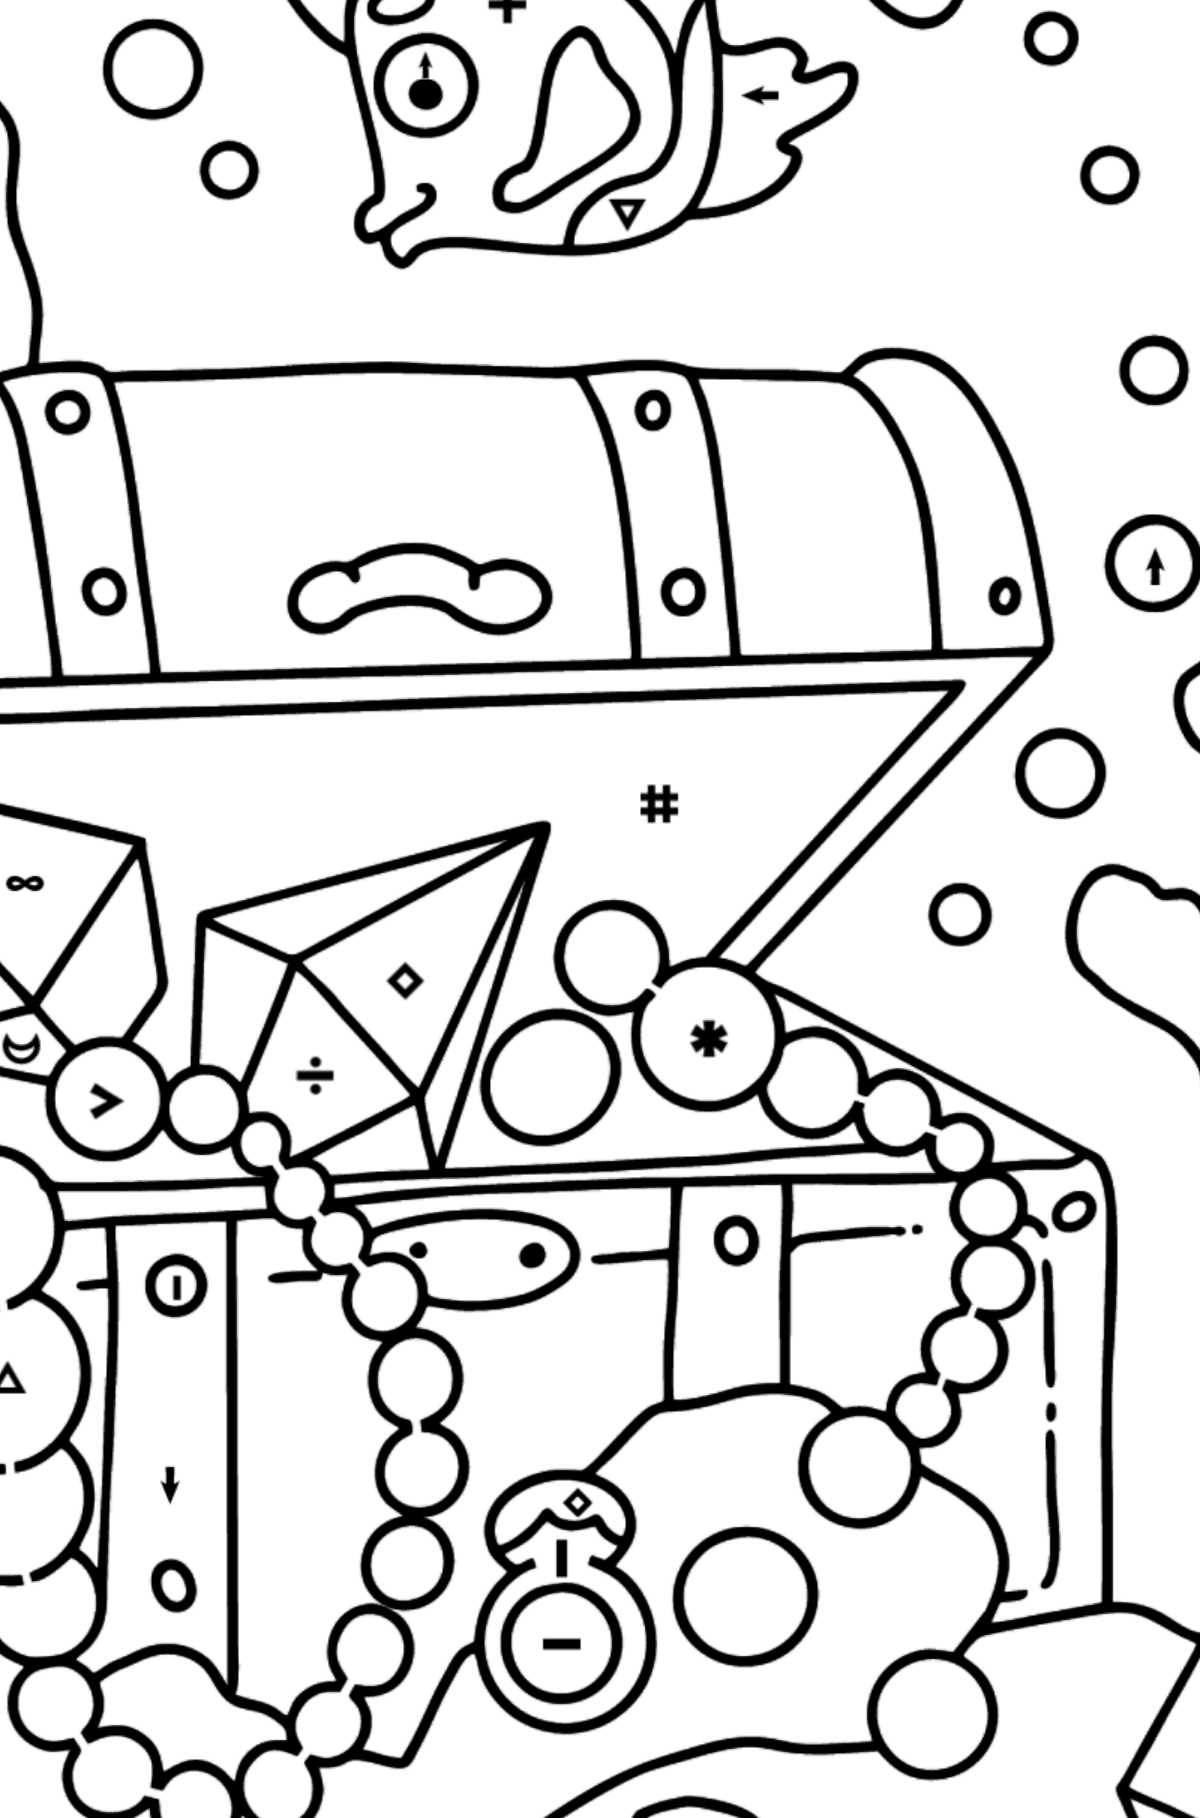 Coloring Page - A Fish is Looking for a Treasure - Coloring by Symbols for Kids